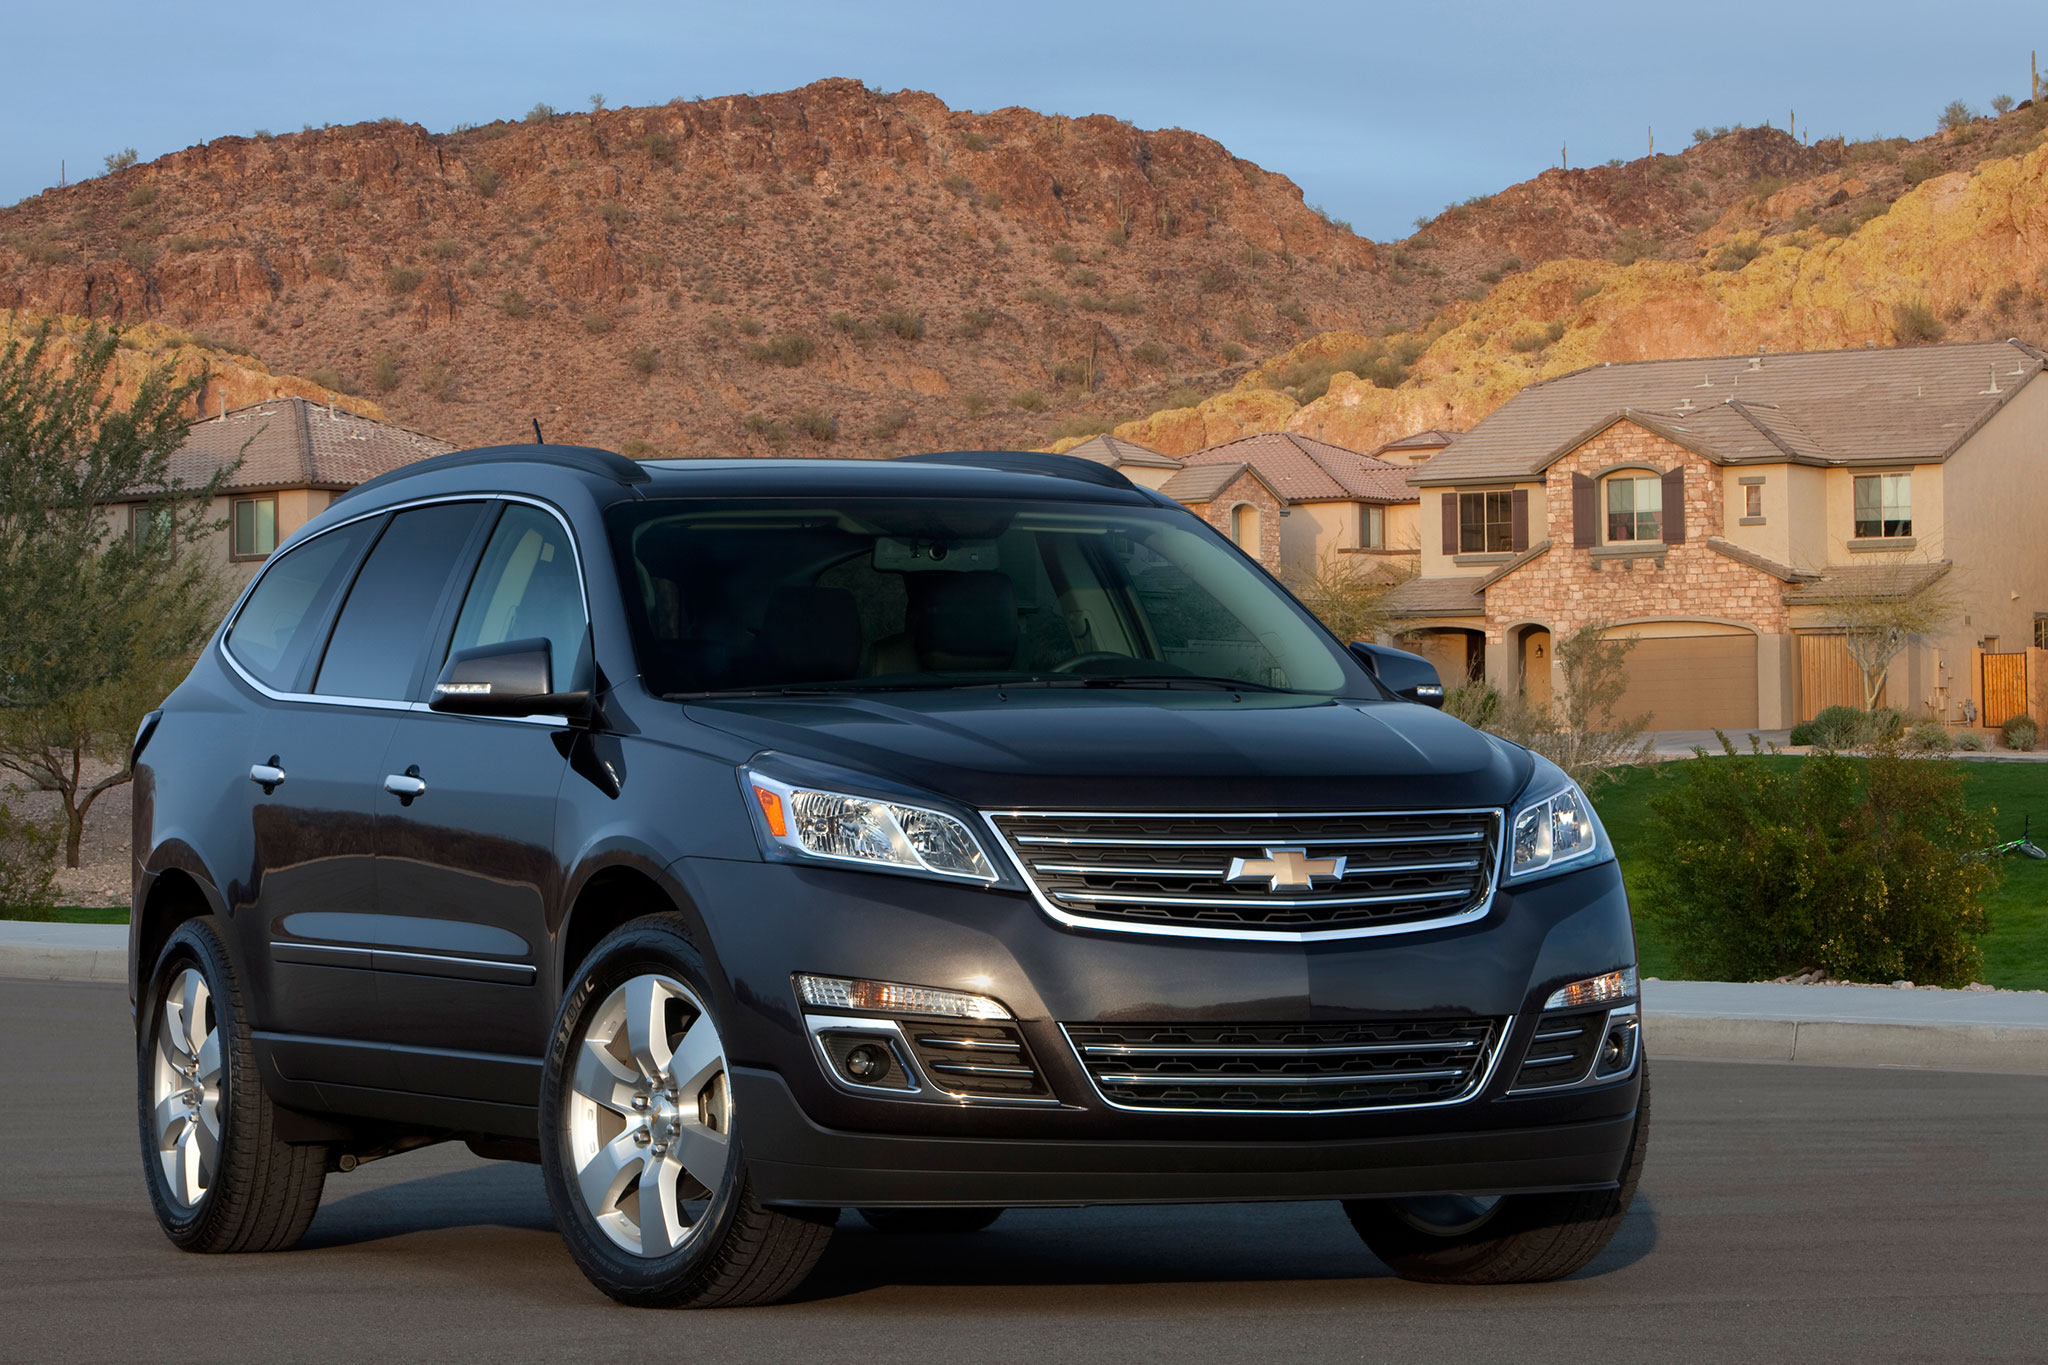 2017 Chevrolet Traverse Ltz Front View